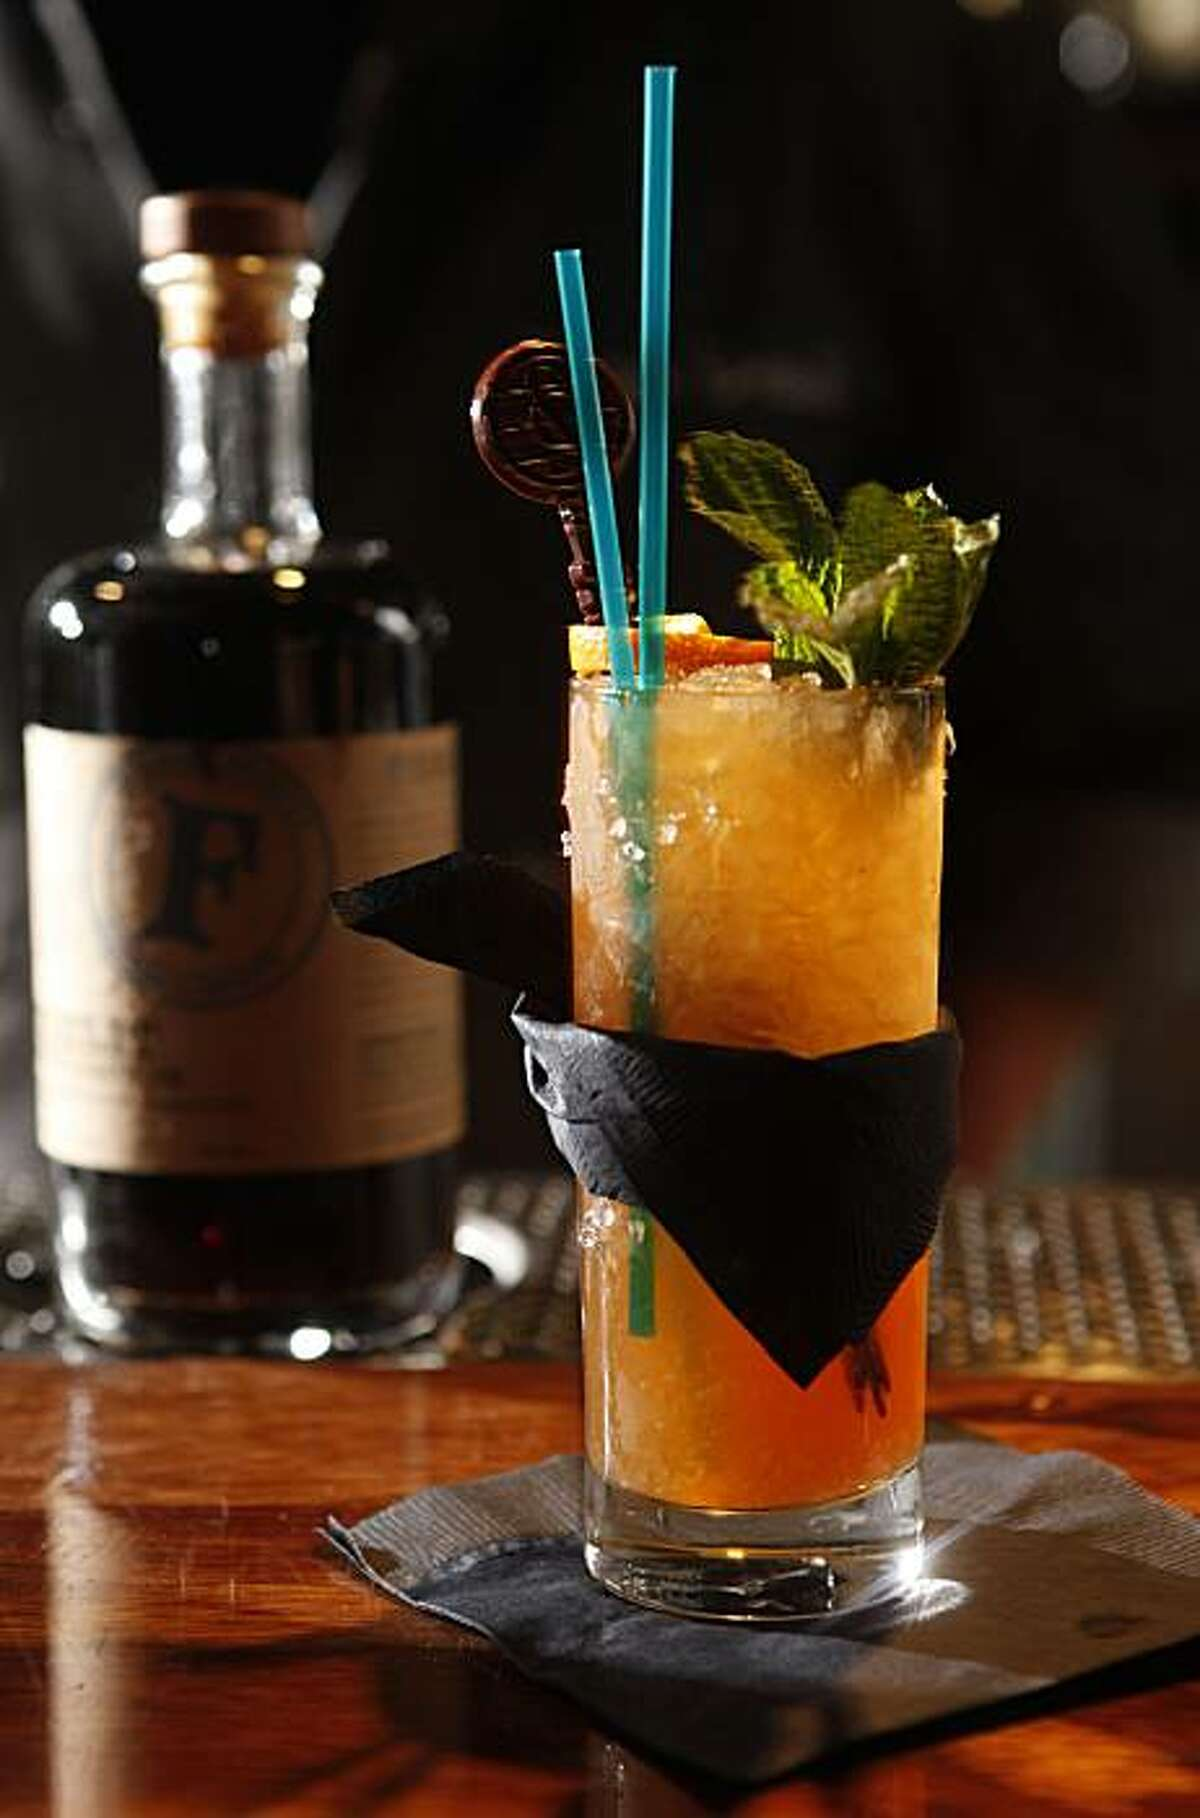 A Rear Admiral's Swizzle, which showcases a coffee liquor called Firelit, is ready for tasting on Thursday May 20, 2010 in San Francisco, Calif.